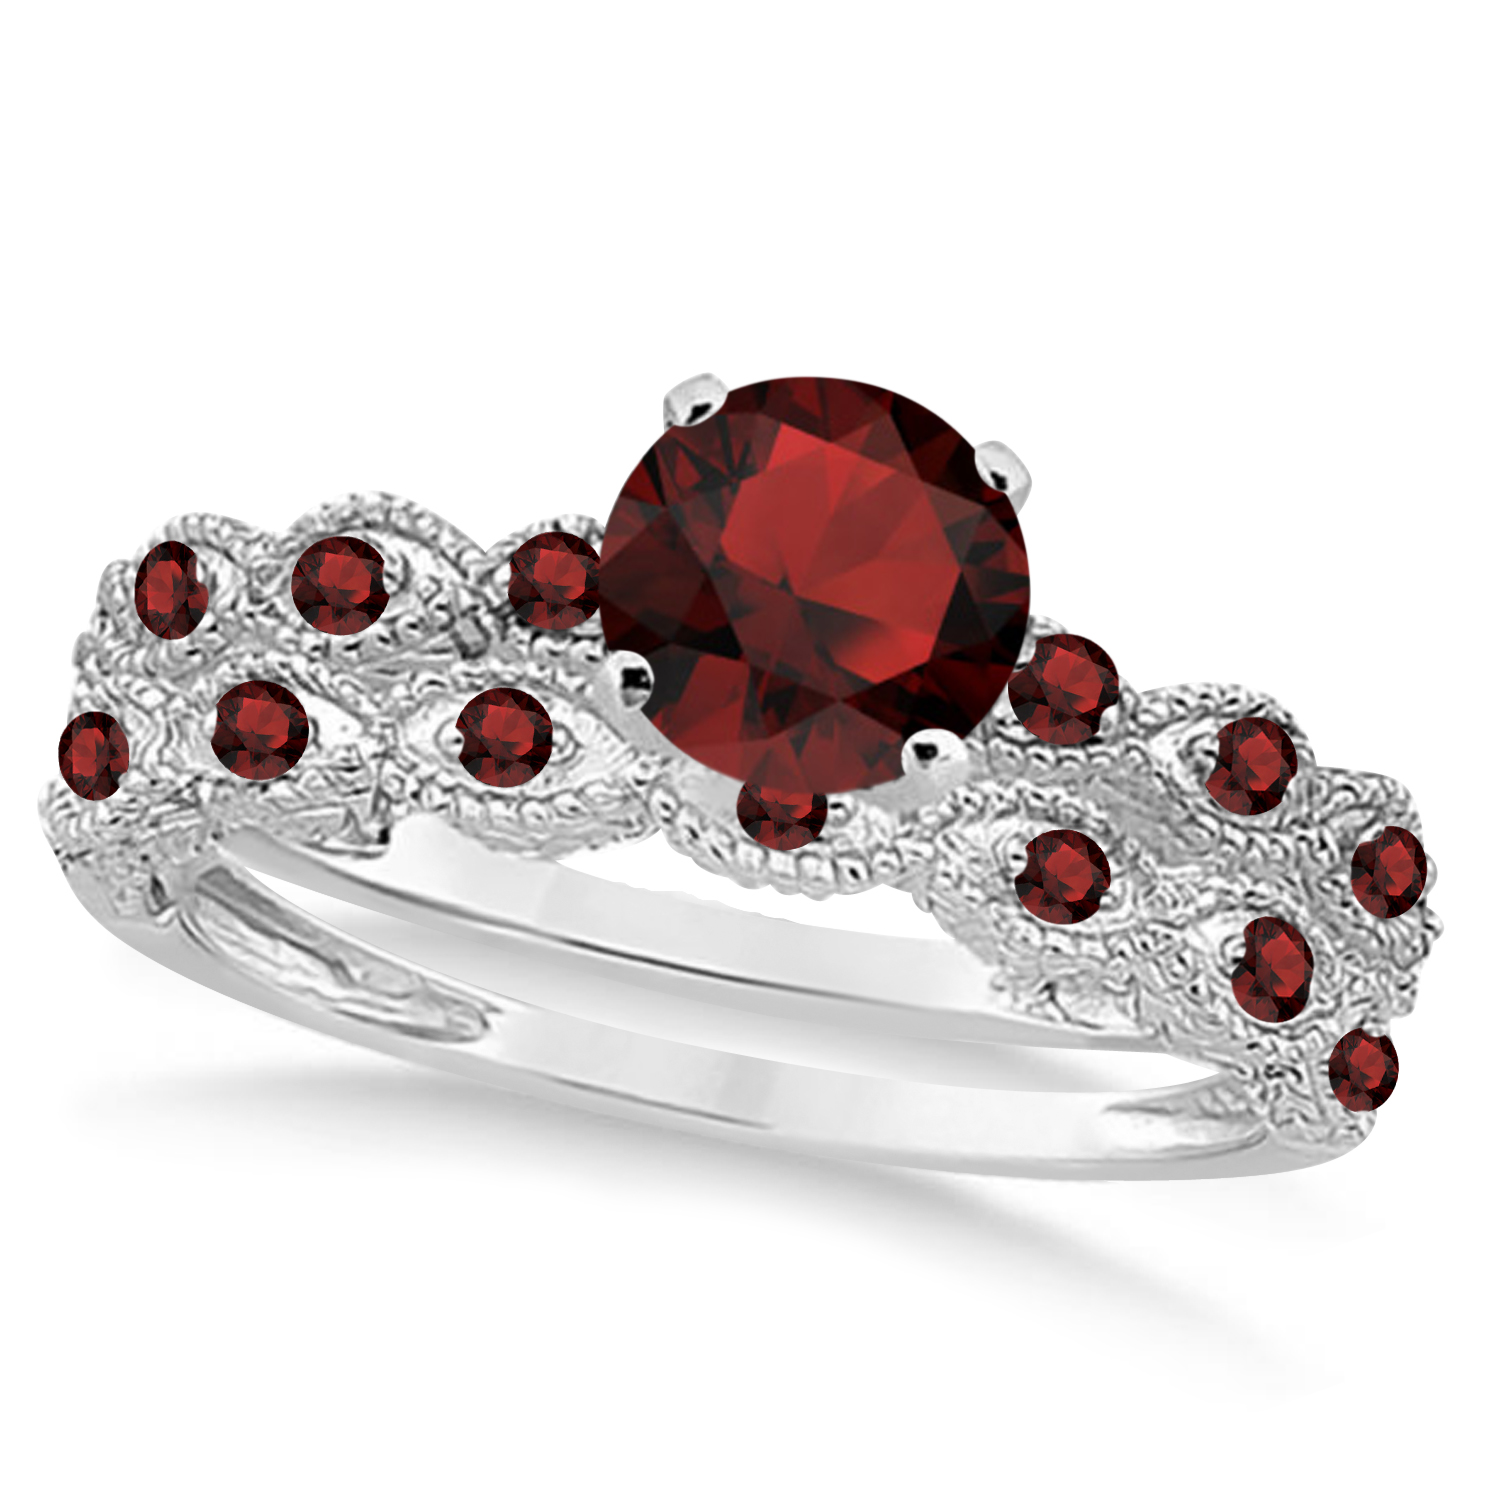 Vintage Garnet Engagement Ring Bridal Set 18k White Gold 1.36ct